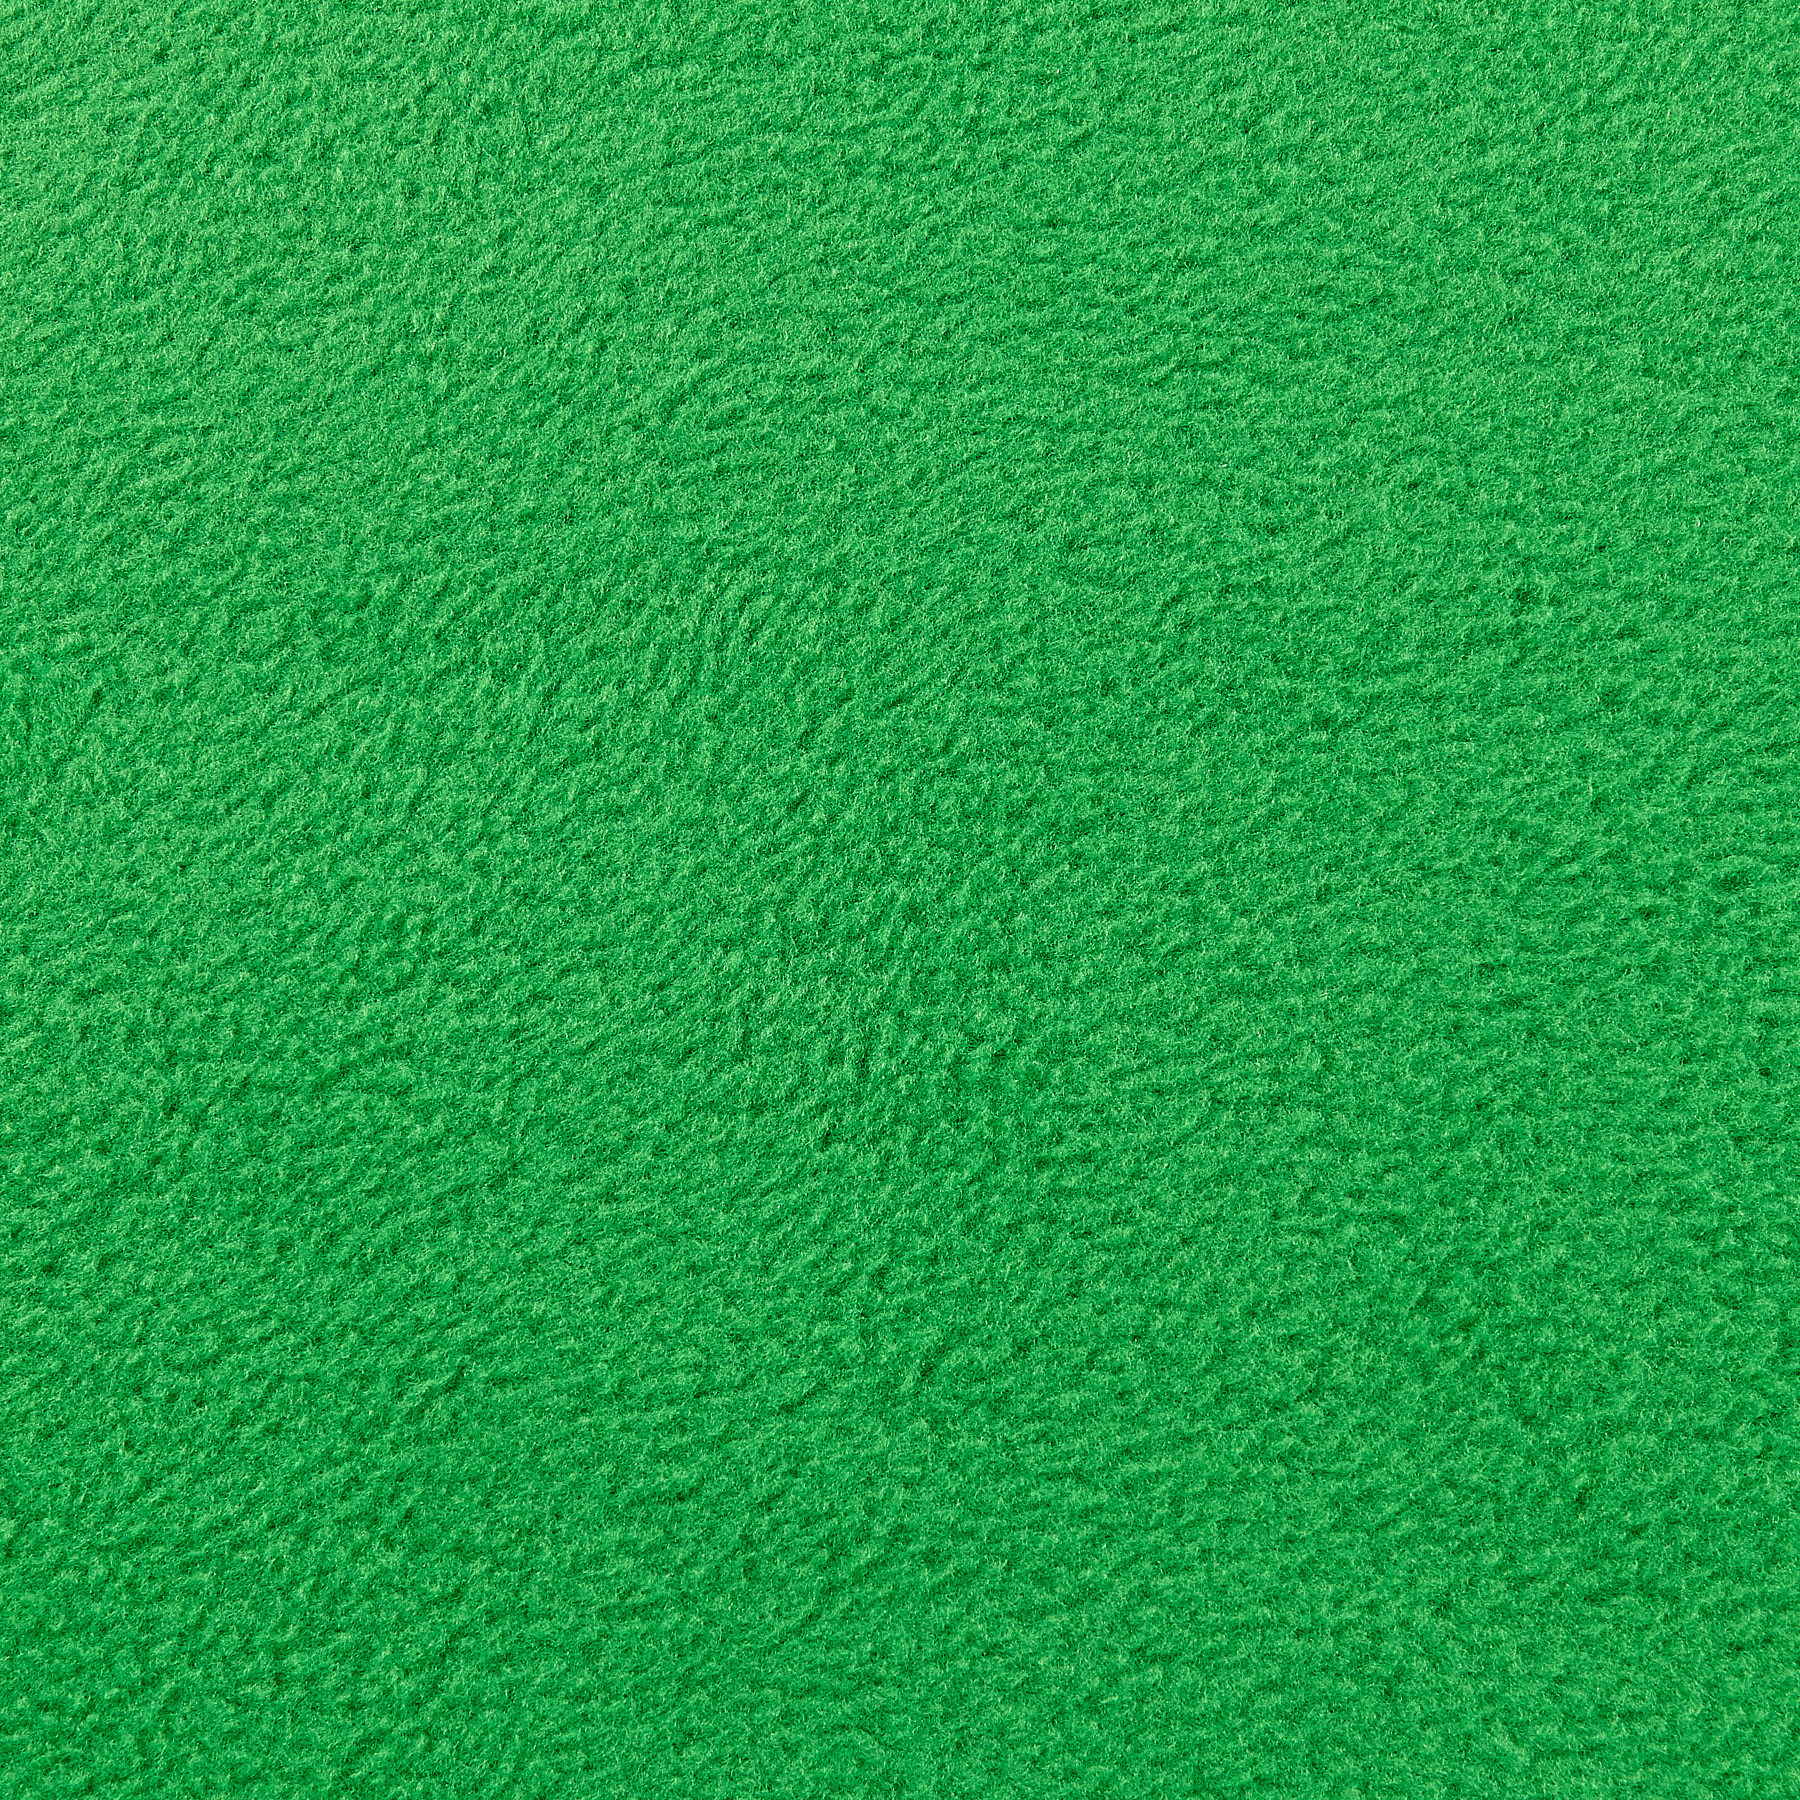 Winterfleece Velour Jolly Green Fabric